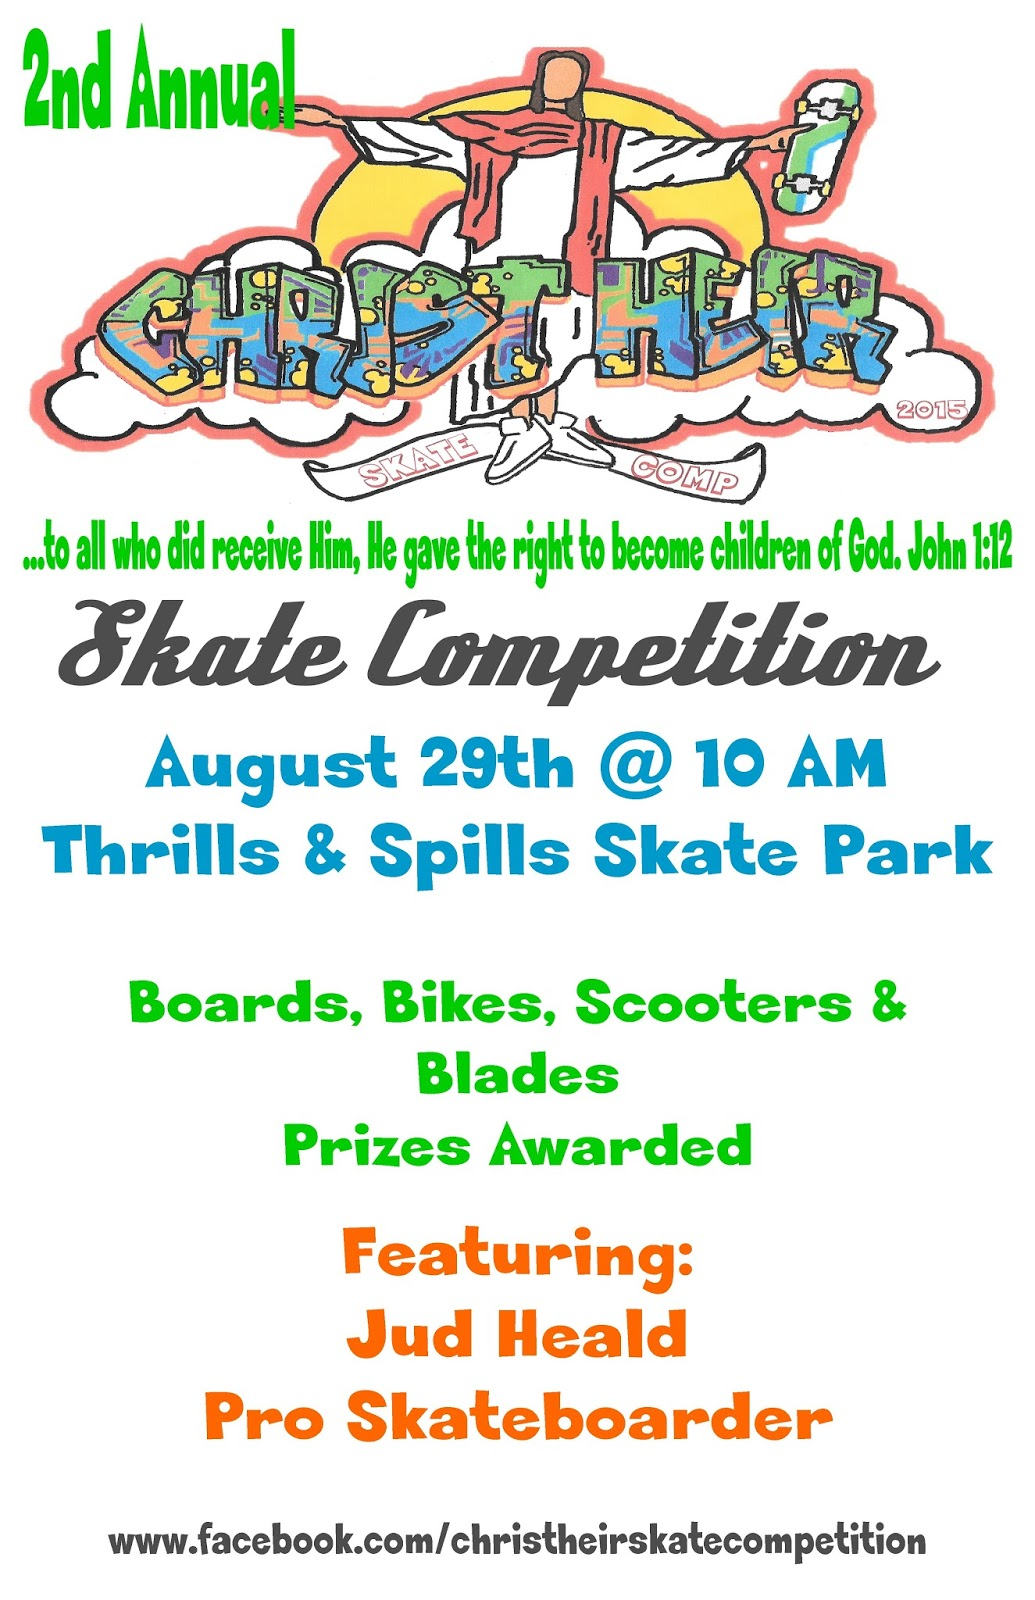 City Of Laporte Indiana Jobs Of Under City Records Laporte Indiana Skateboard Competition